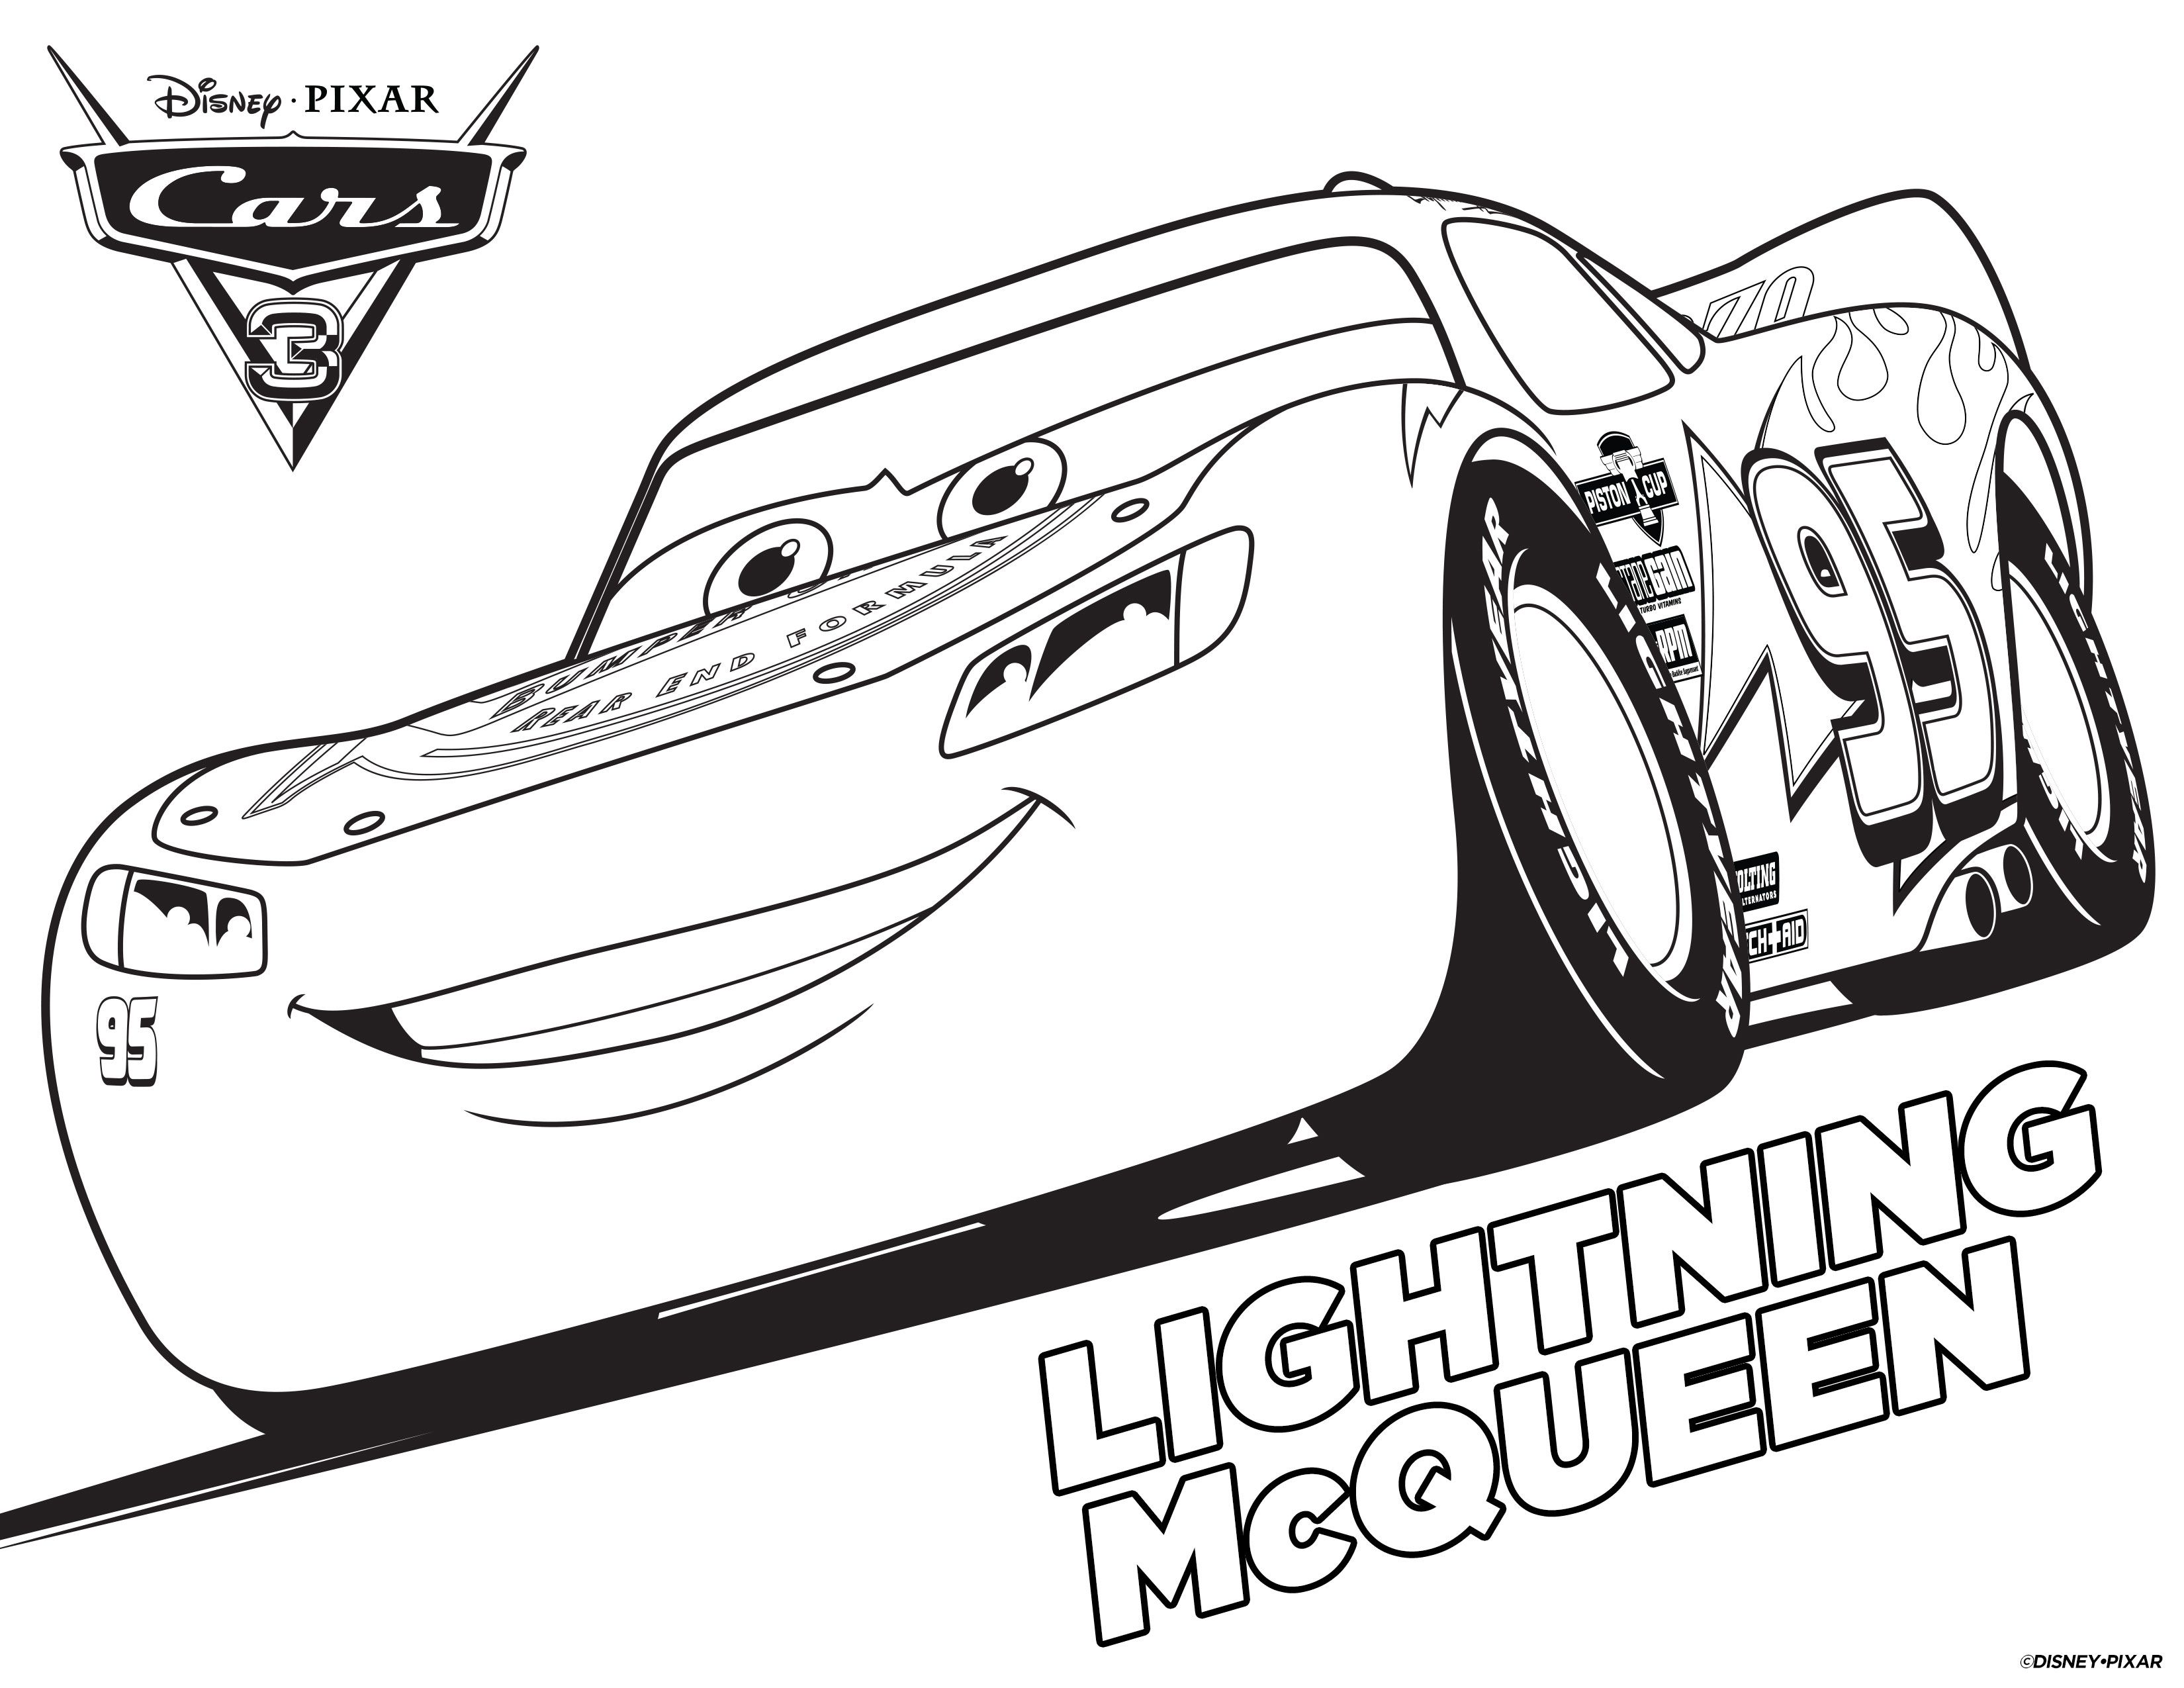 Cars 3 Lightning Mcqueen Coloring Page Cars 3 Coloring Pages Race Car Coloring Pages Disney Coloring Pages Cars Coloring Pages